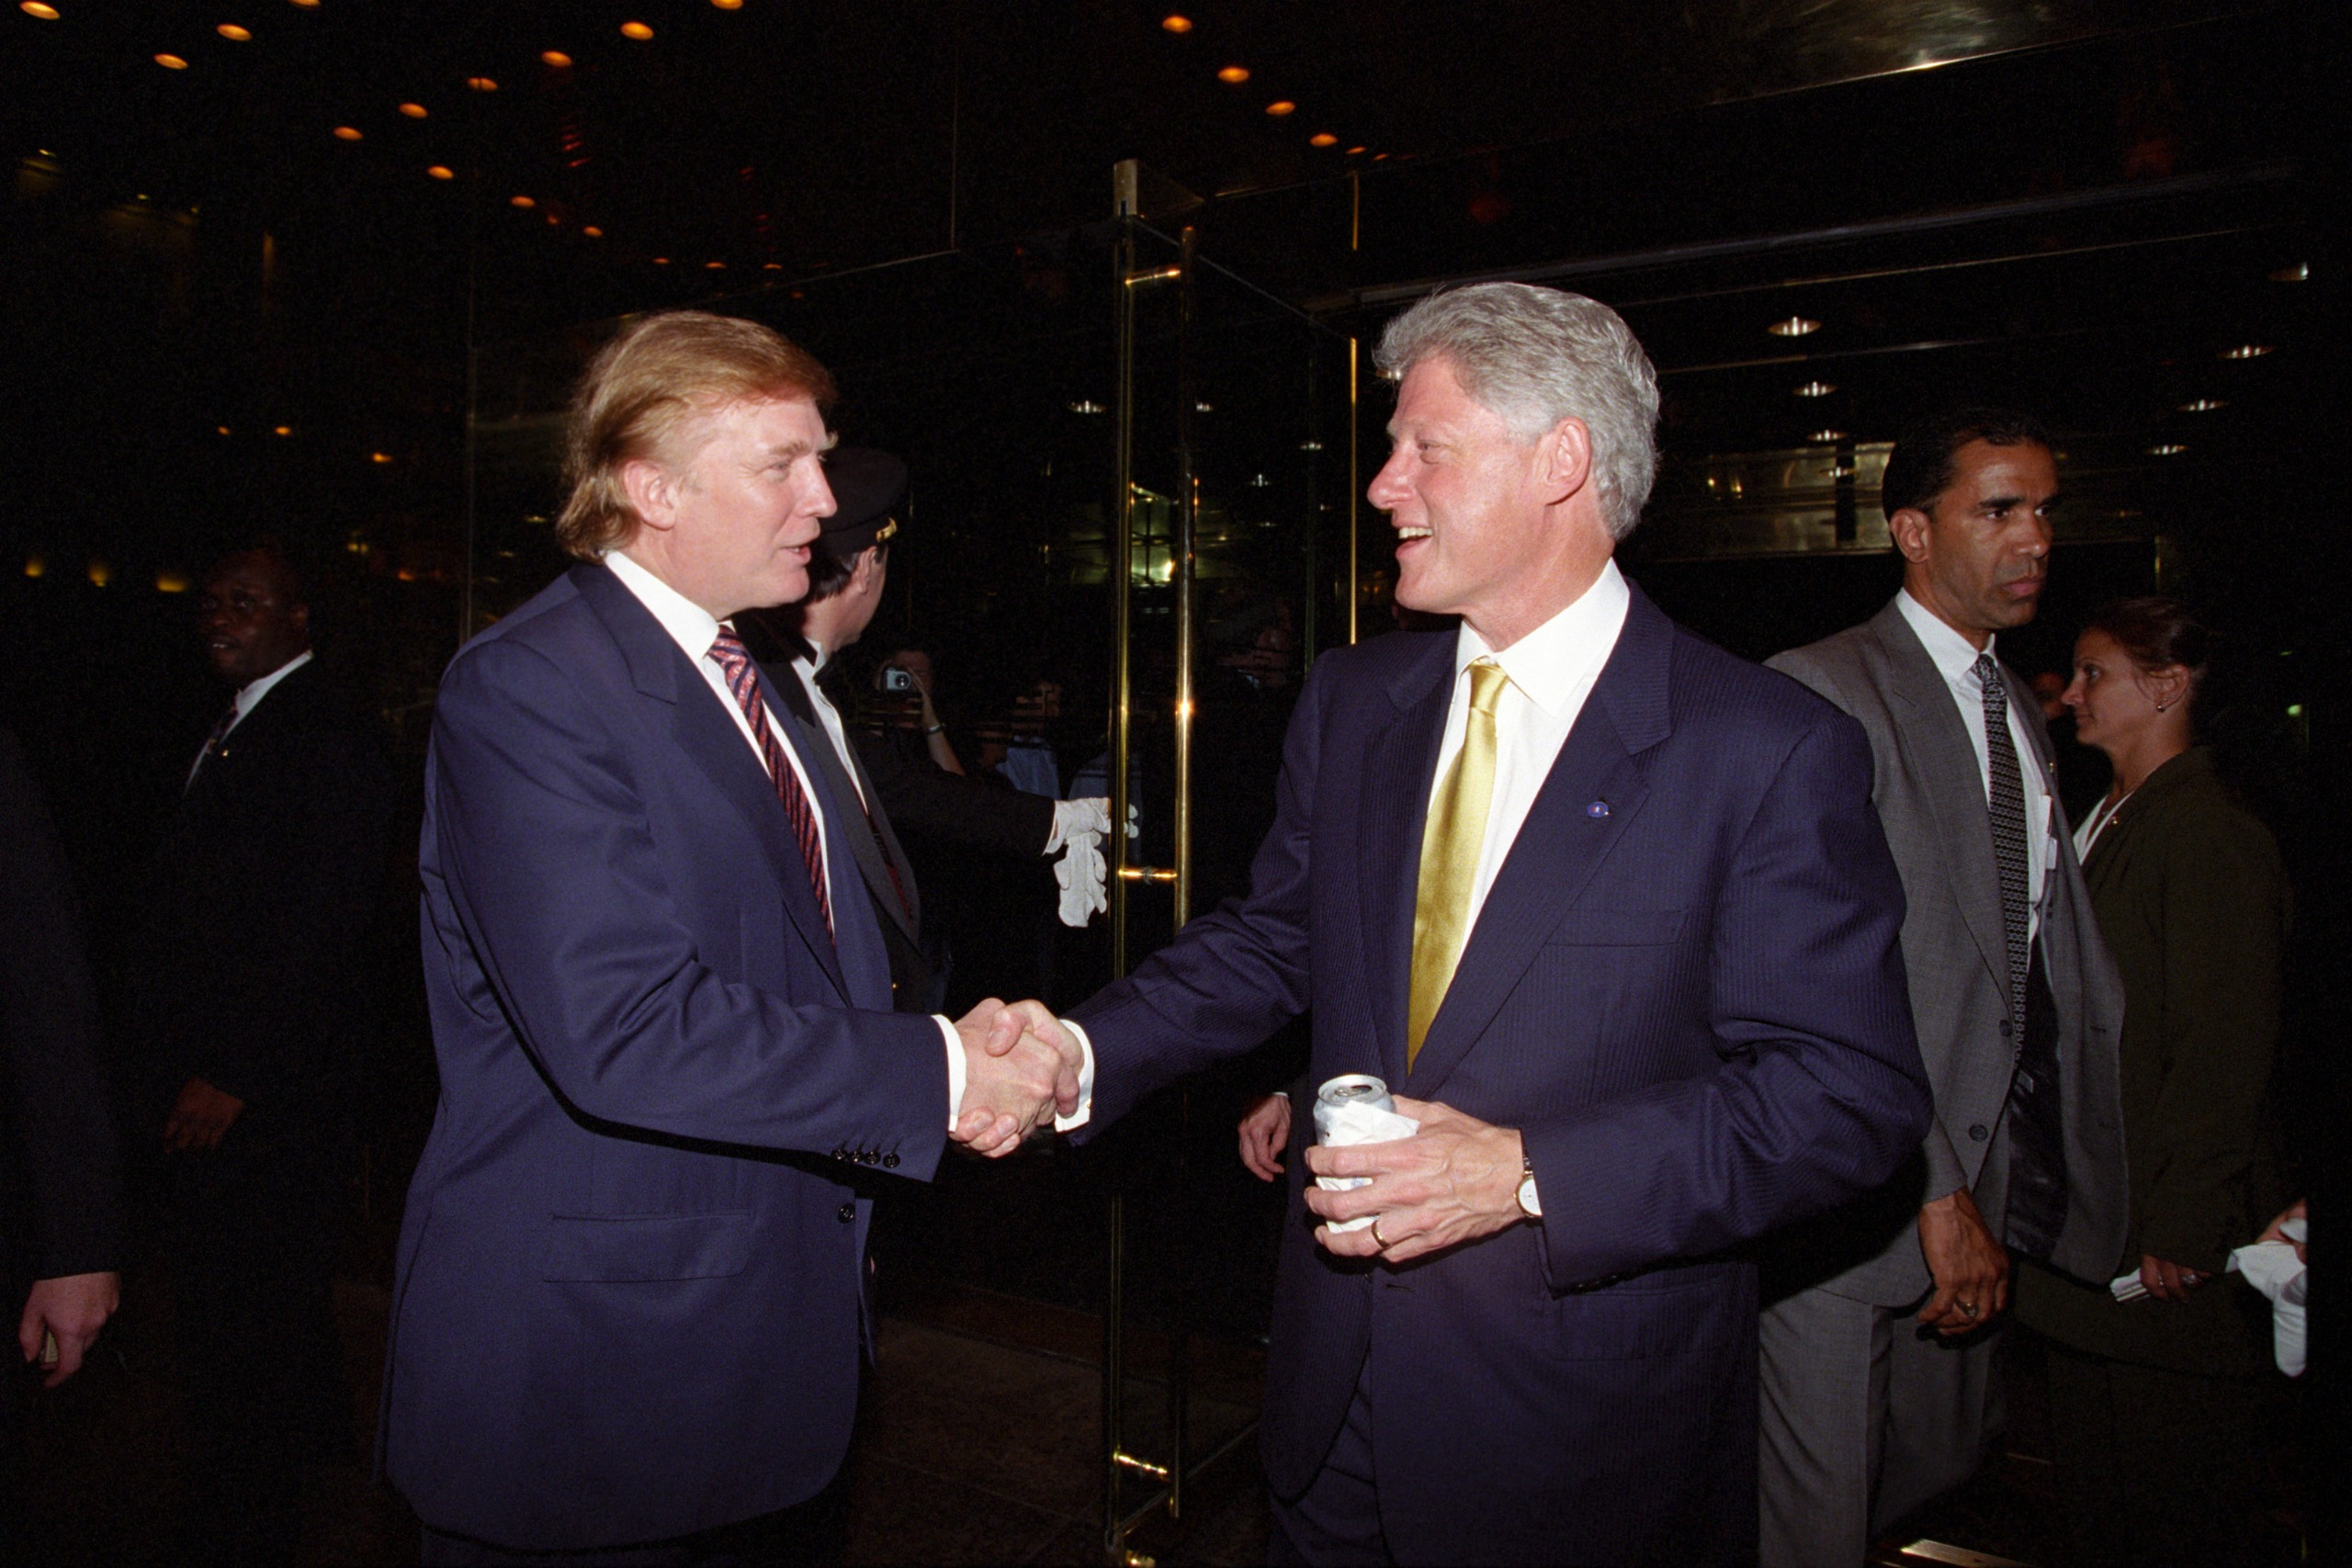 Donald Trump and Bill Clinton.jpg